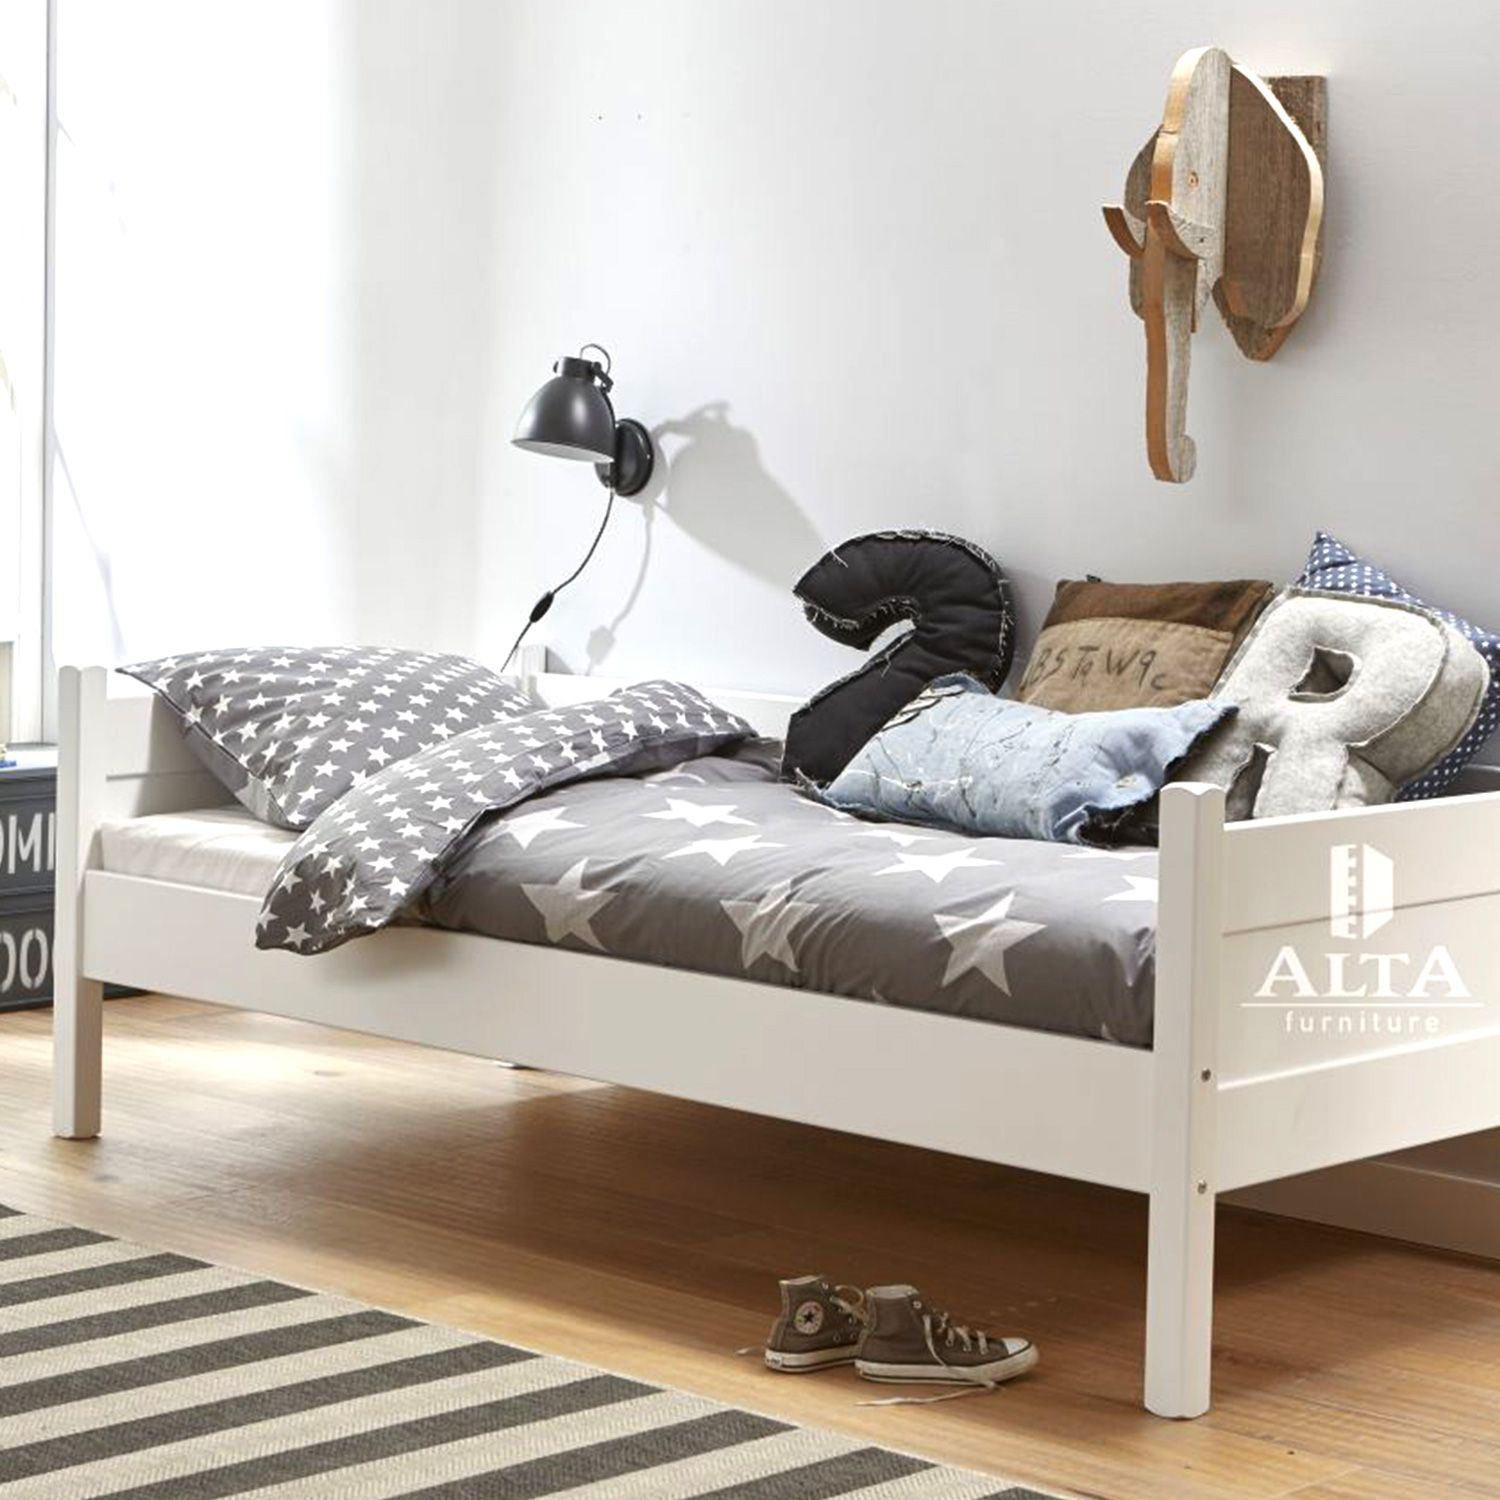 tagesbett 90x200 best jugendbett einzelbett holzbett bettgestell x wei tagesbett bett kiefer. Black Bedroom Furniture Sets. Home Design Ideas